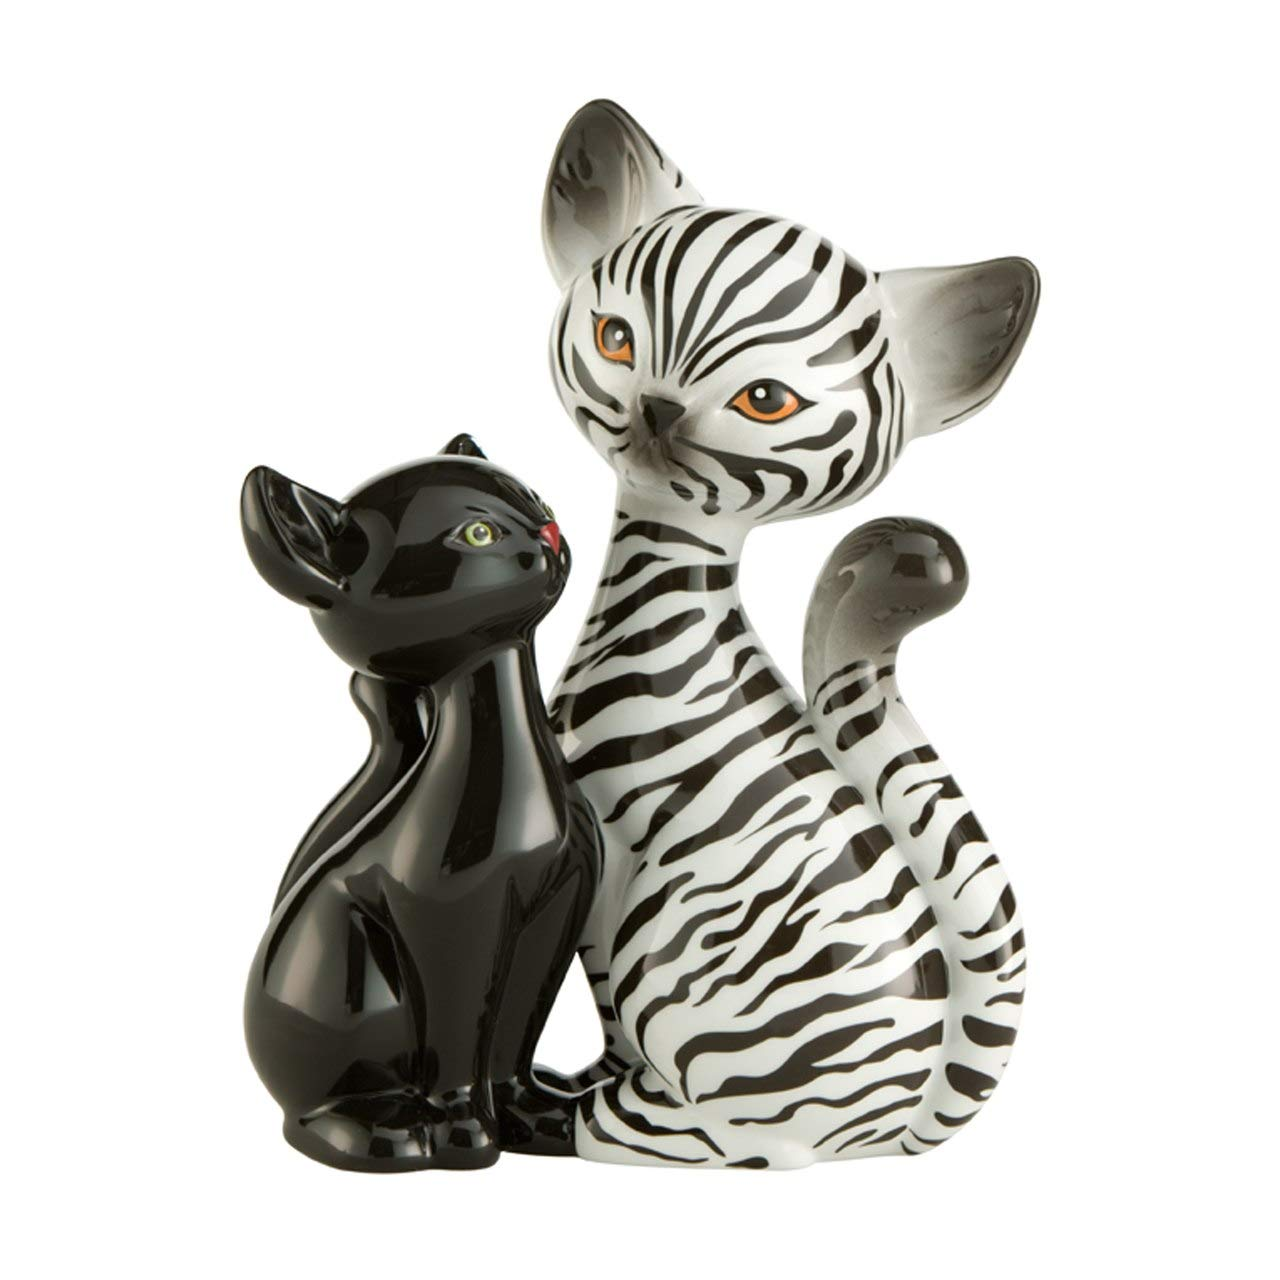 Goebel Artis Orbis Zebra Kitty in Love Kitty de Luxe Cat